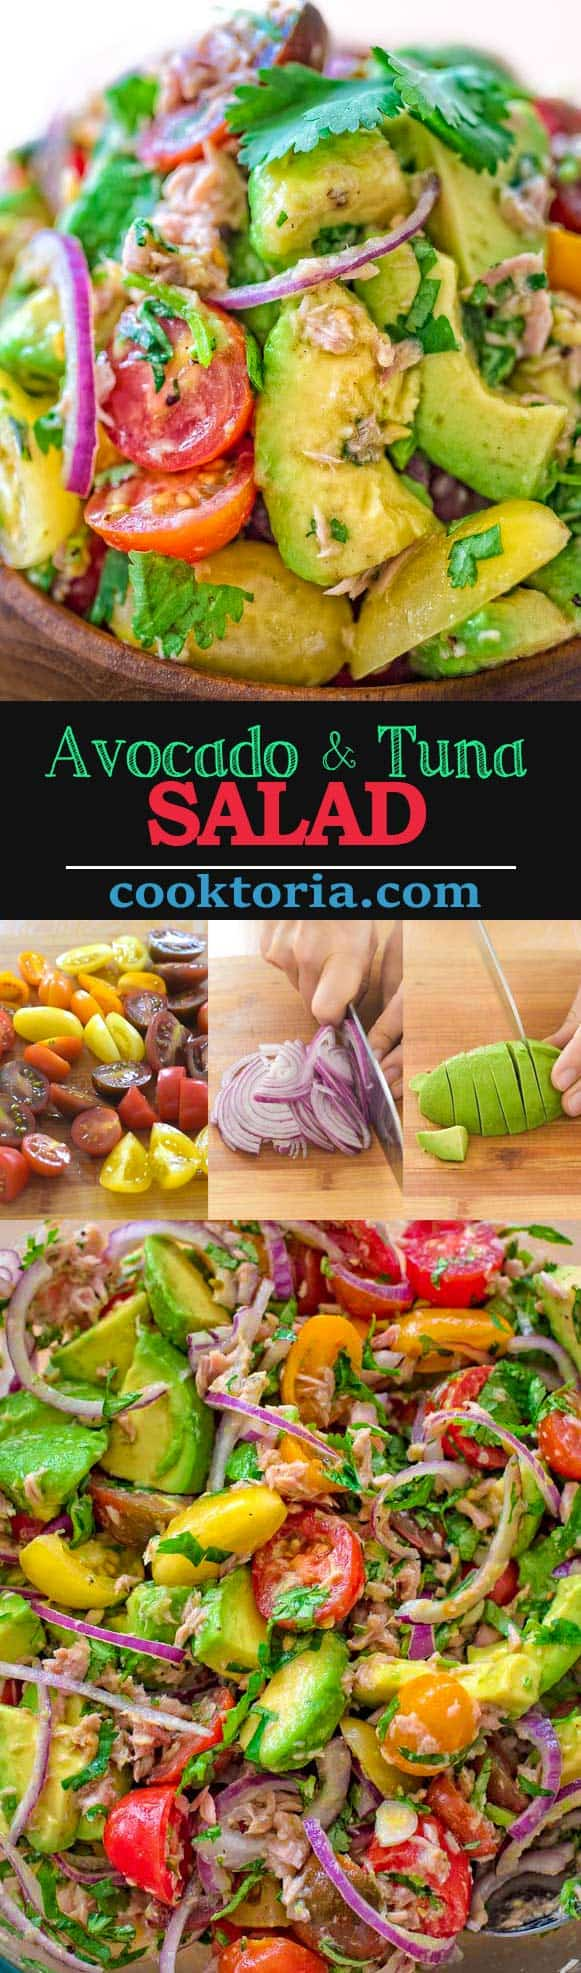 Very simple, flavorful, and tasty, this Avocado Tuna Salad requires just a few ingredients and 10 minutes of your time. ❤ COOKTORIA.COM